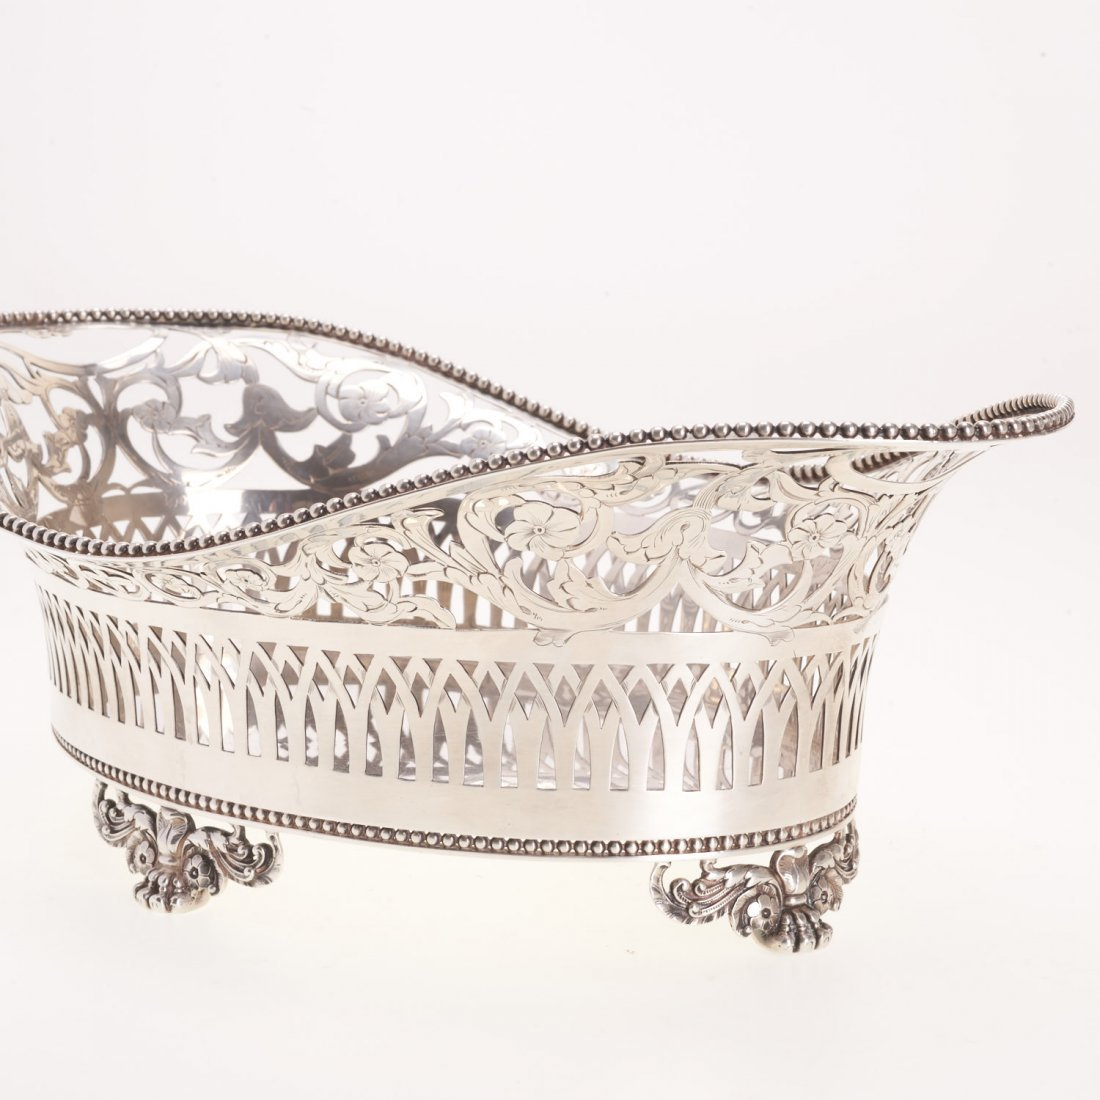 Tiffany & Co. reticulated sterling silver basket - 3